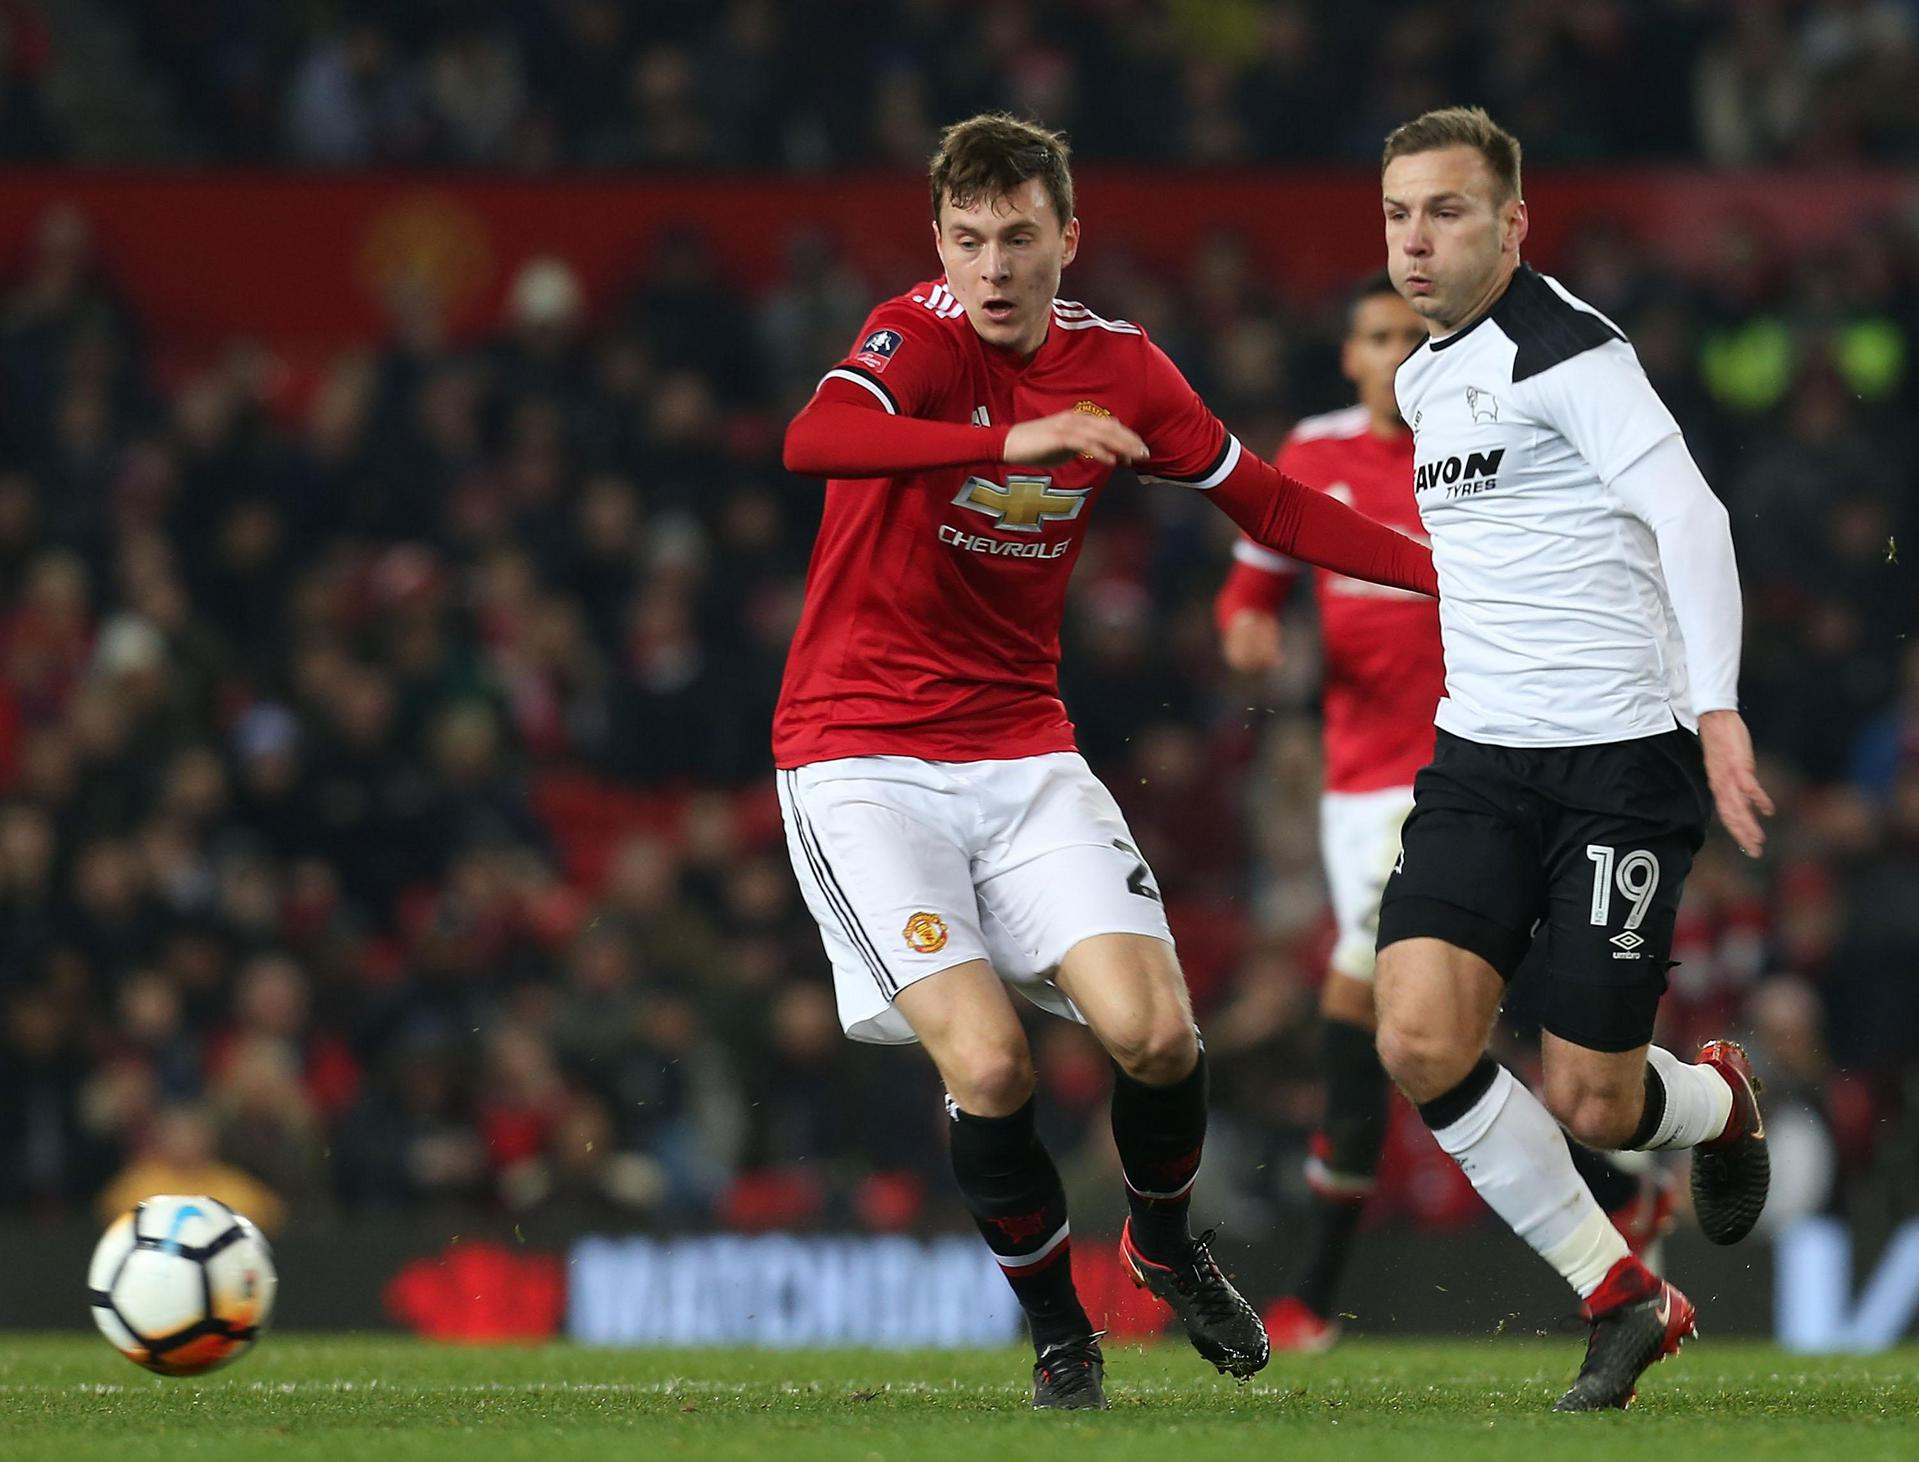 Victor Lindelof in action against Derby County in January 2018